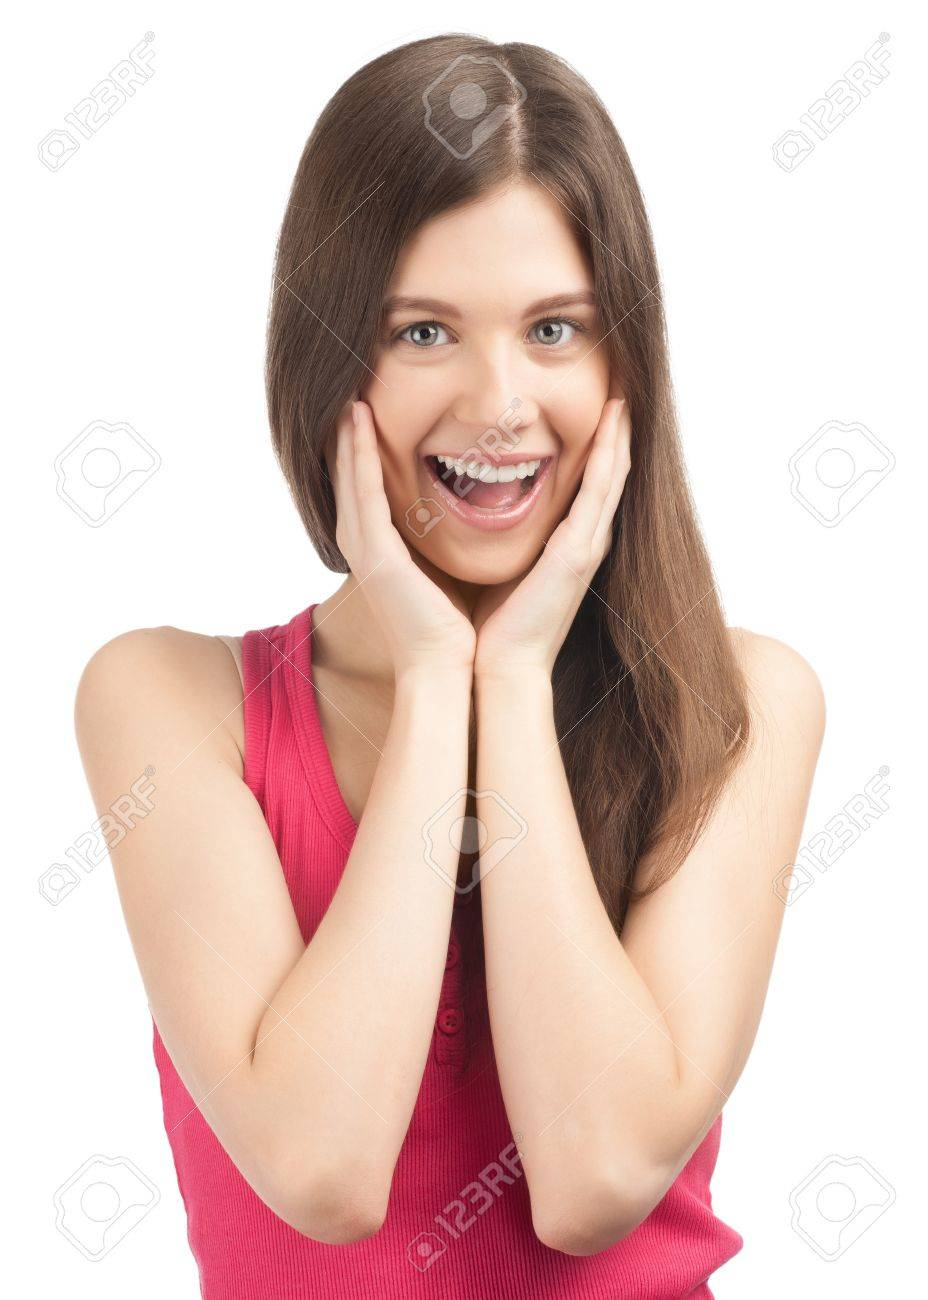 Portrait of surprised beautiful girl  in casual wear holding her face in astonishment. Isolated on white background. Stock Photo - 10828344